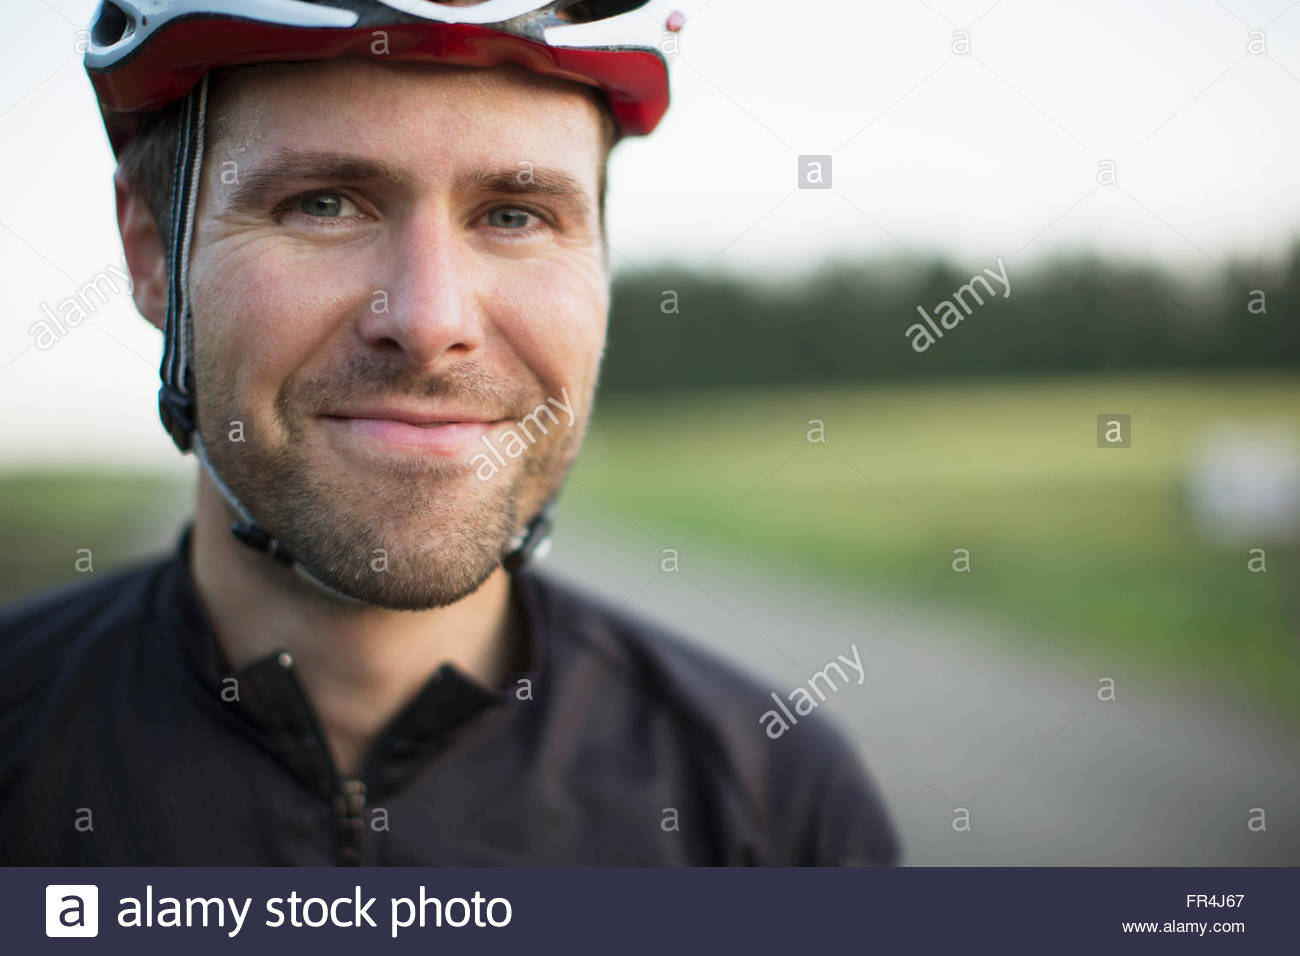 portrait of mid-adult male street bicyclist - Stock Image